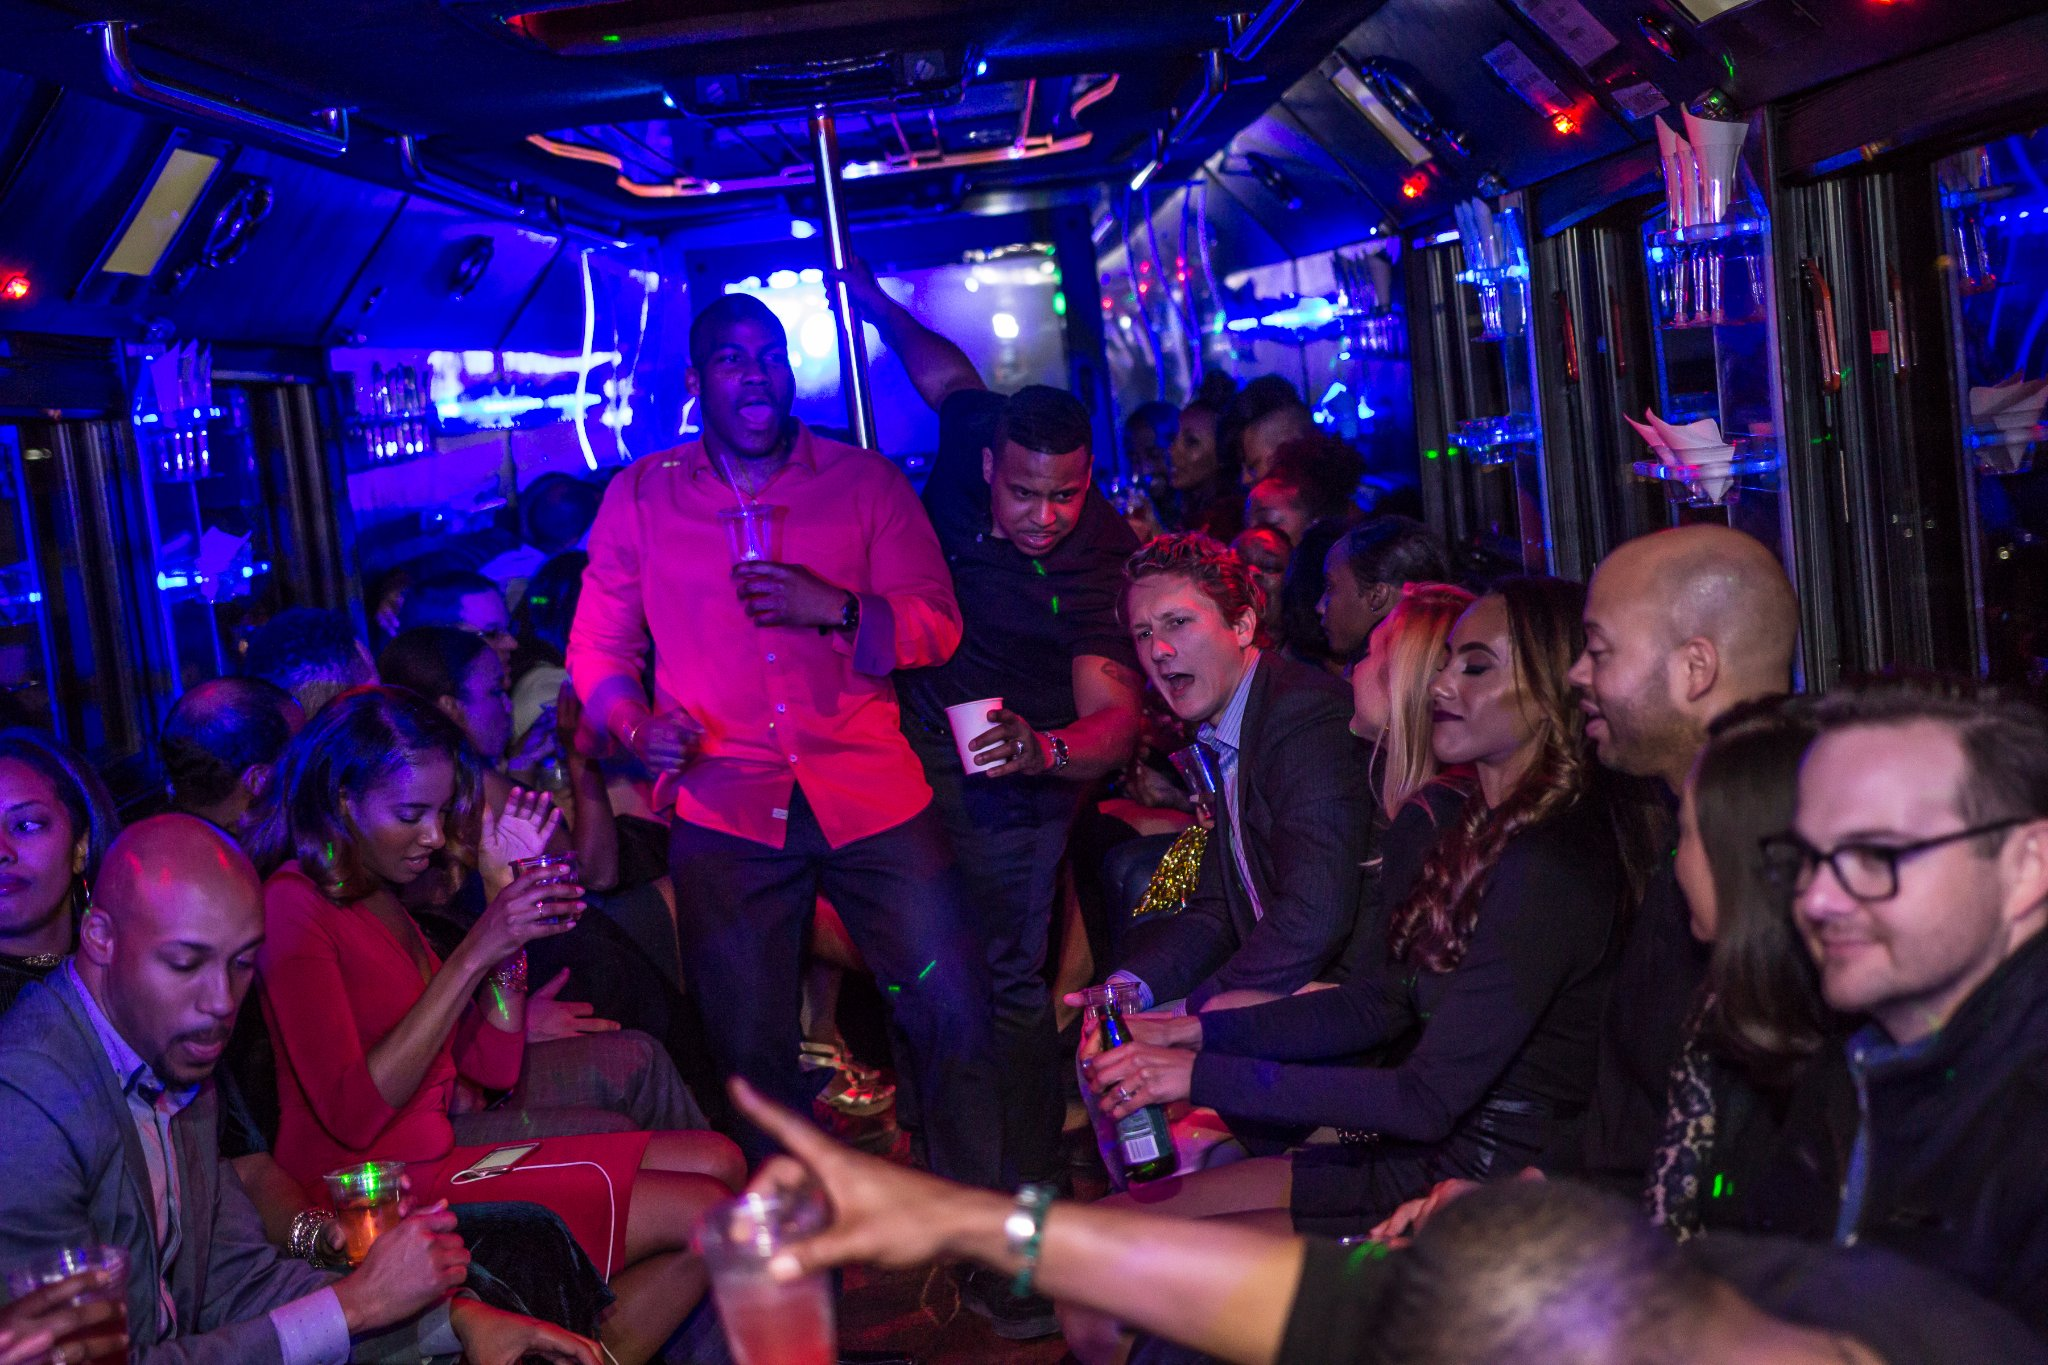 10 Fun Destinations with a KSTG Party Bus or Limo